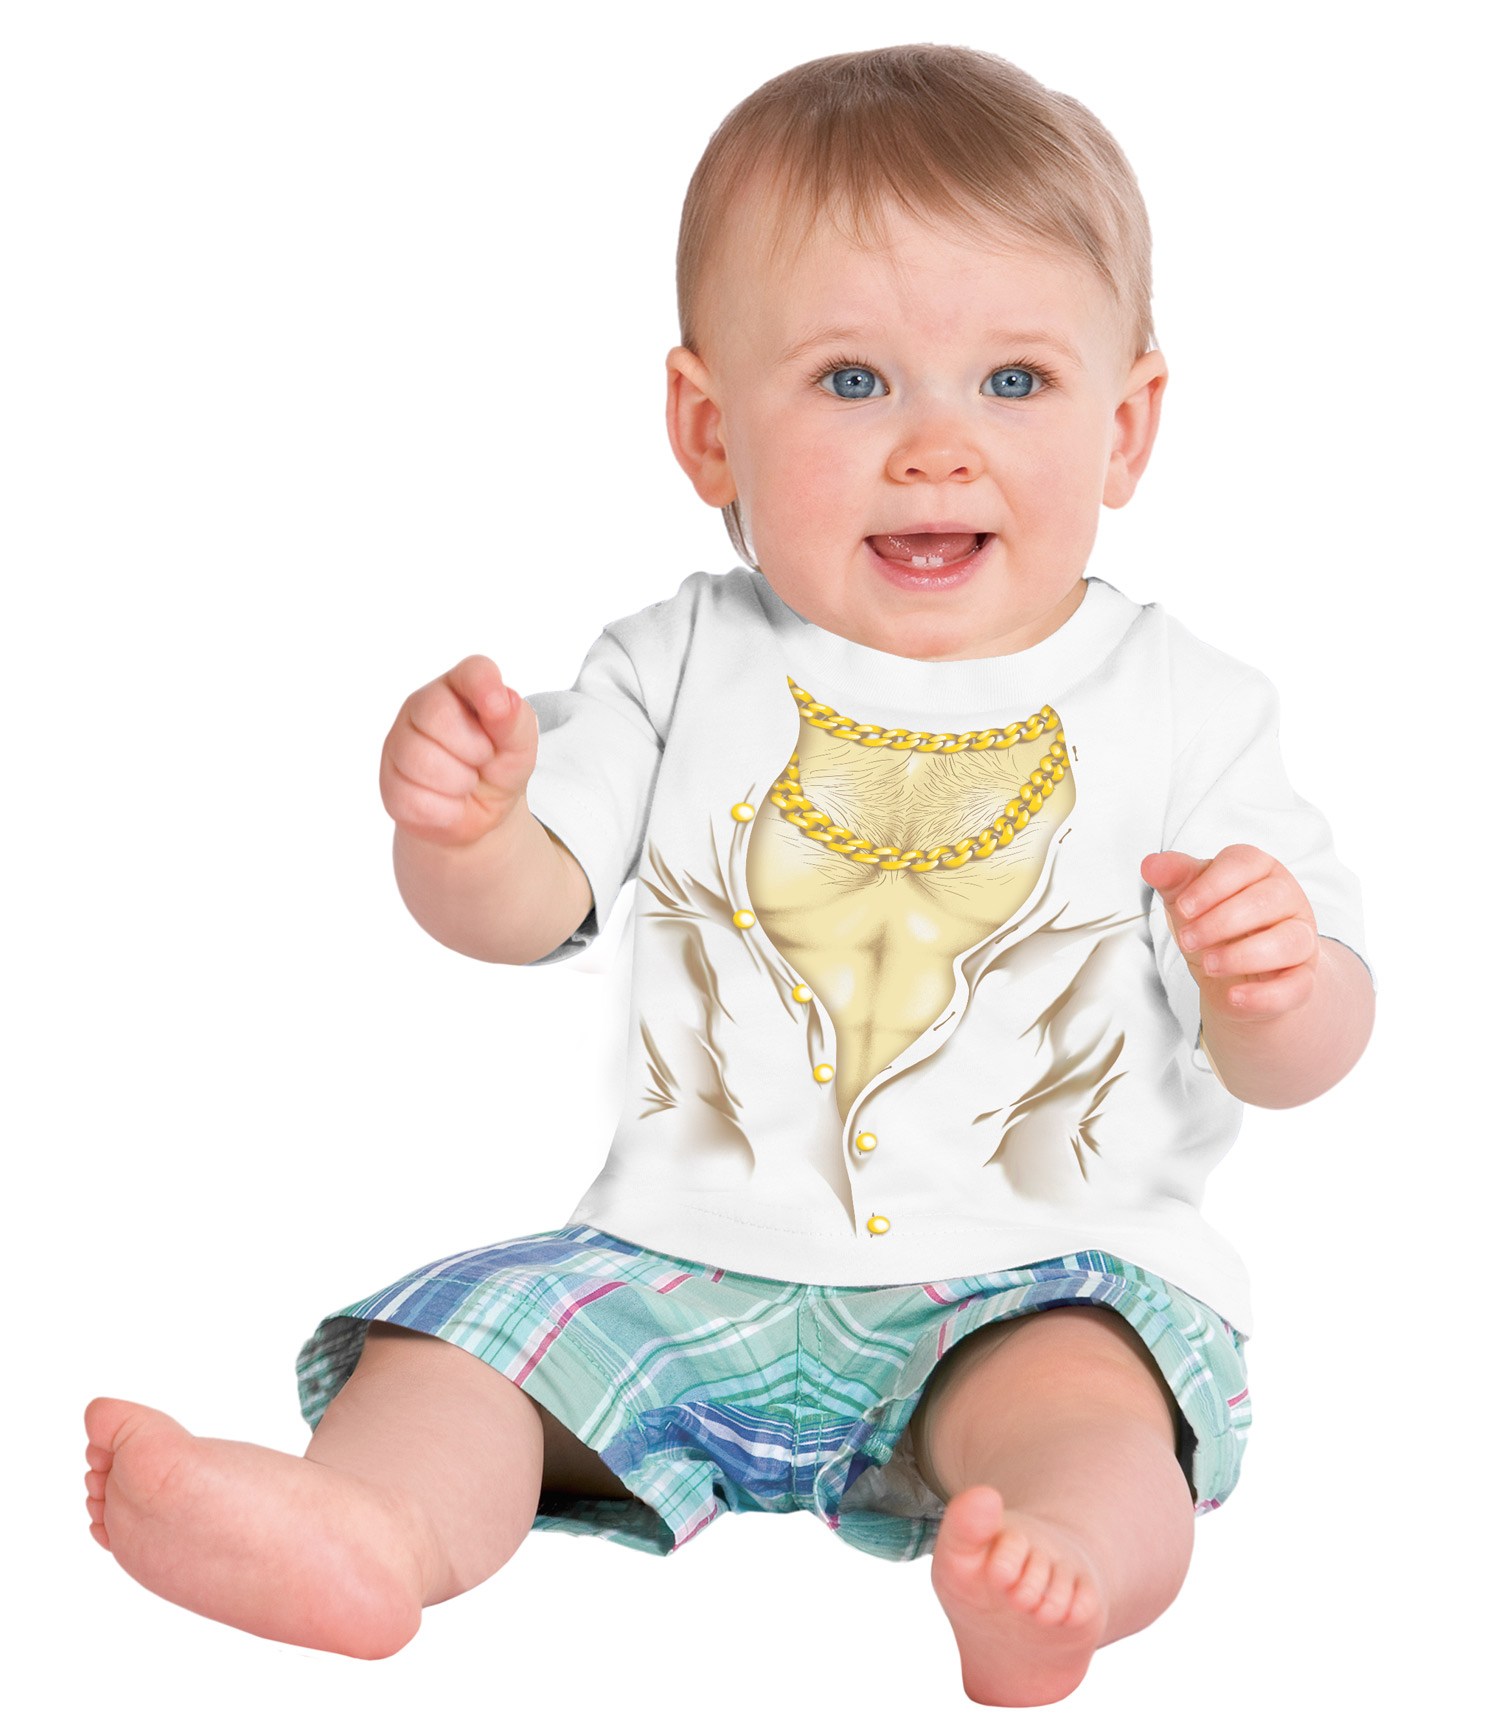 Little boys 39 muscle man funny chest hair gold chains for Toddler t shirt printing